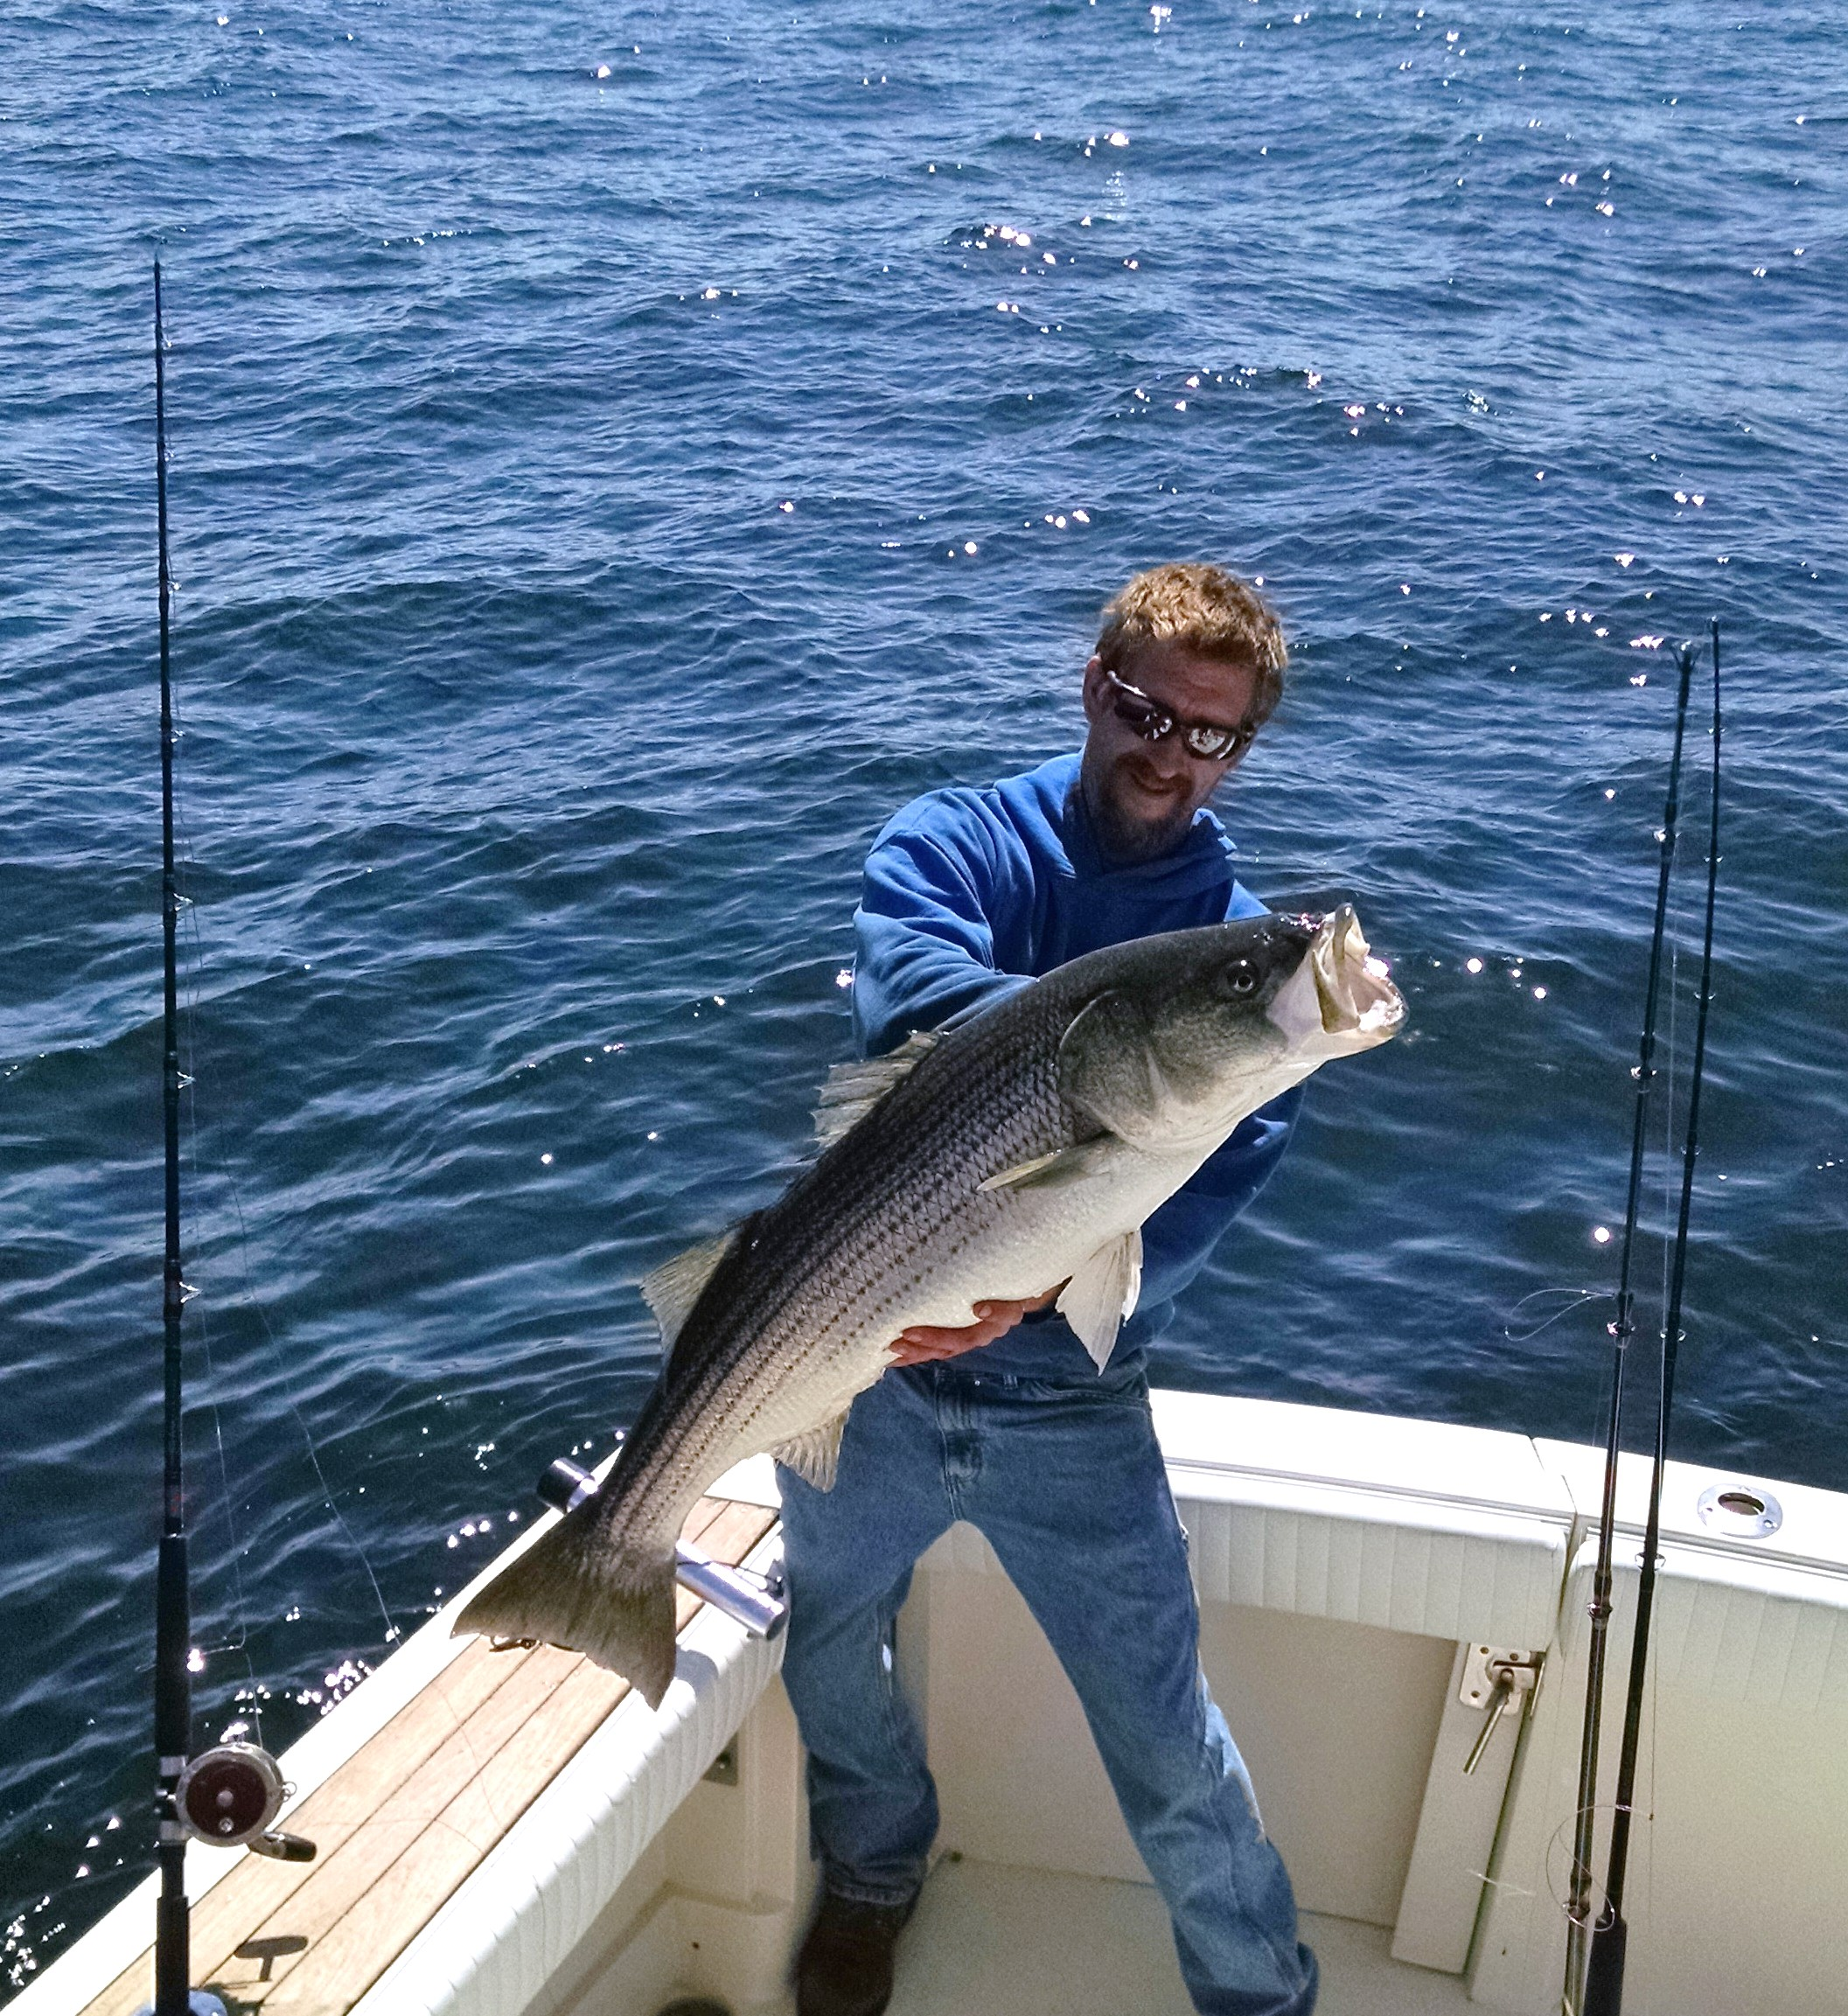 Nj salt fish 2015 05 29 blue chip sportfishing point for Tuna fishing charters nj